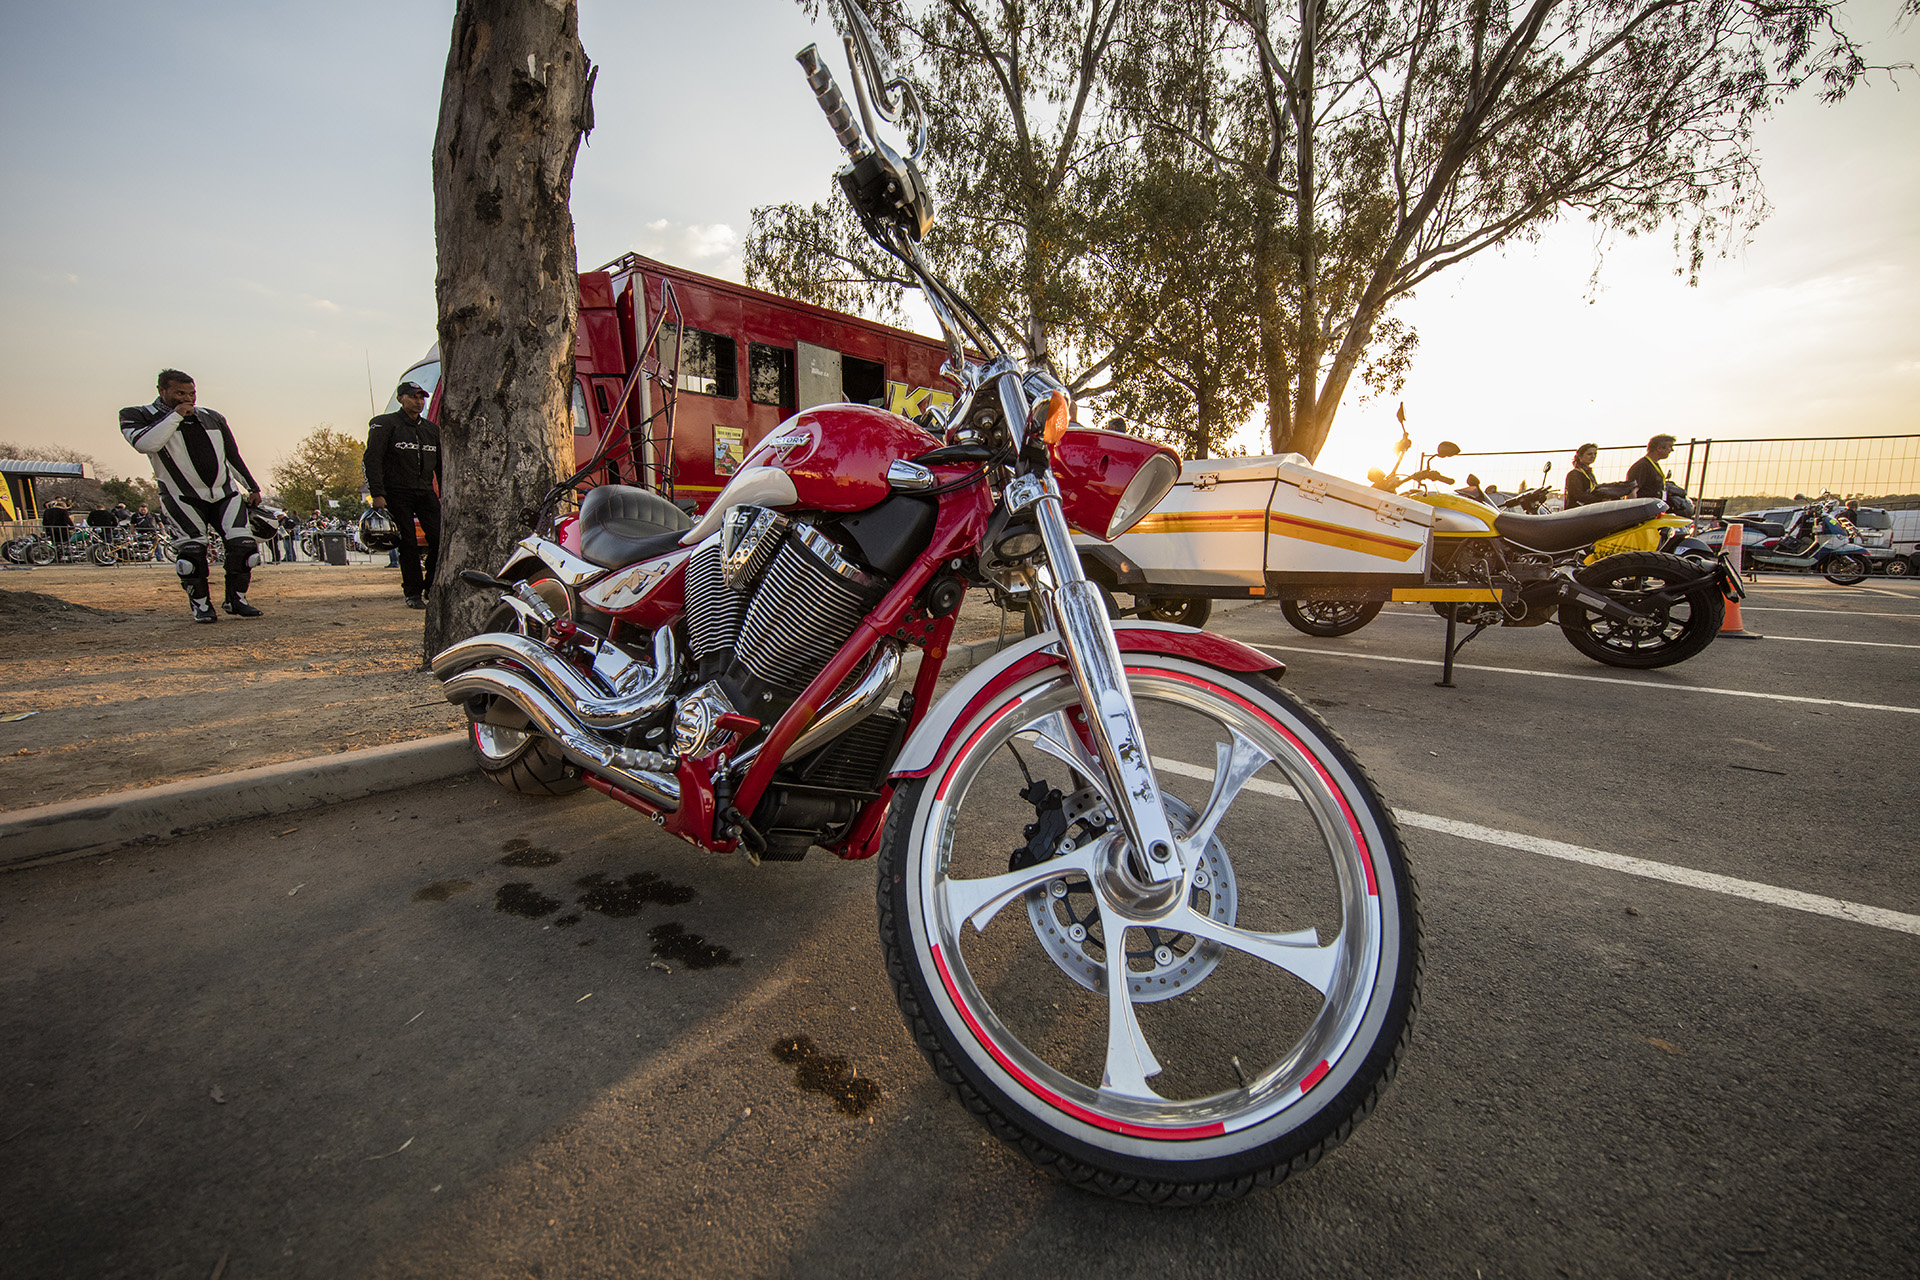 Next Years Competition Will Once Again Boast 14 Carefully Selected Categories From Cafe Racer Scooters Trikes And 3 Wheelers To Classic Street Fighters